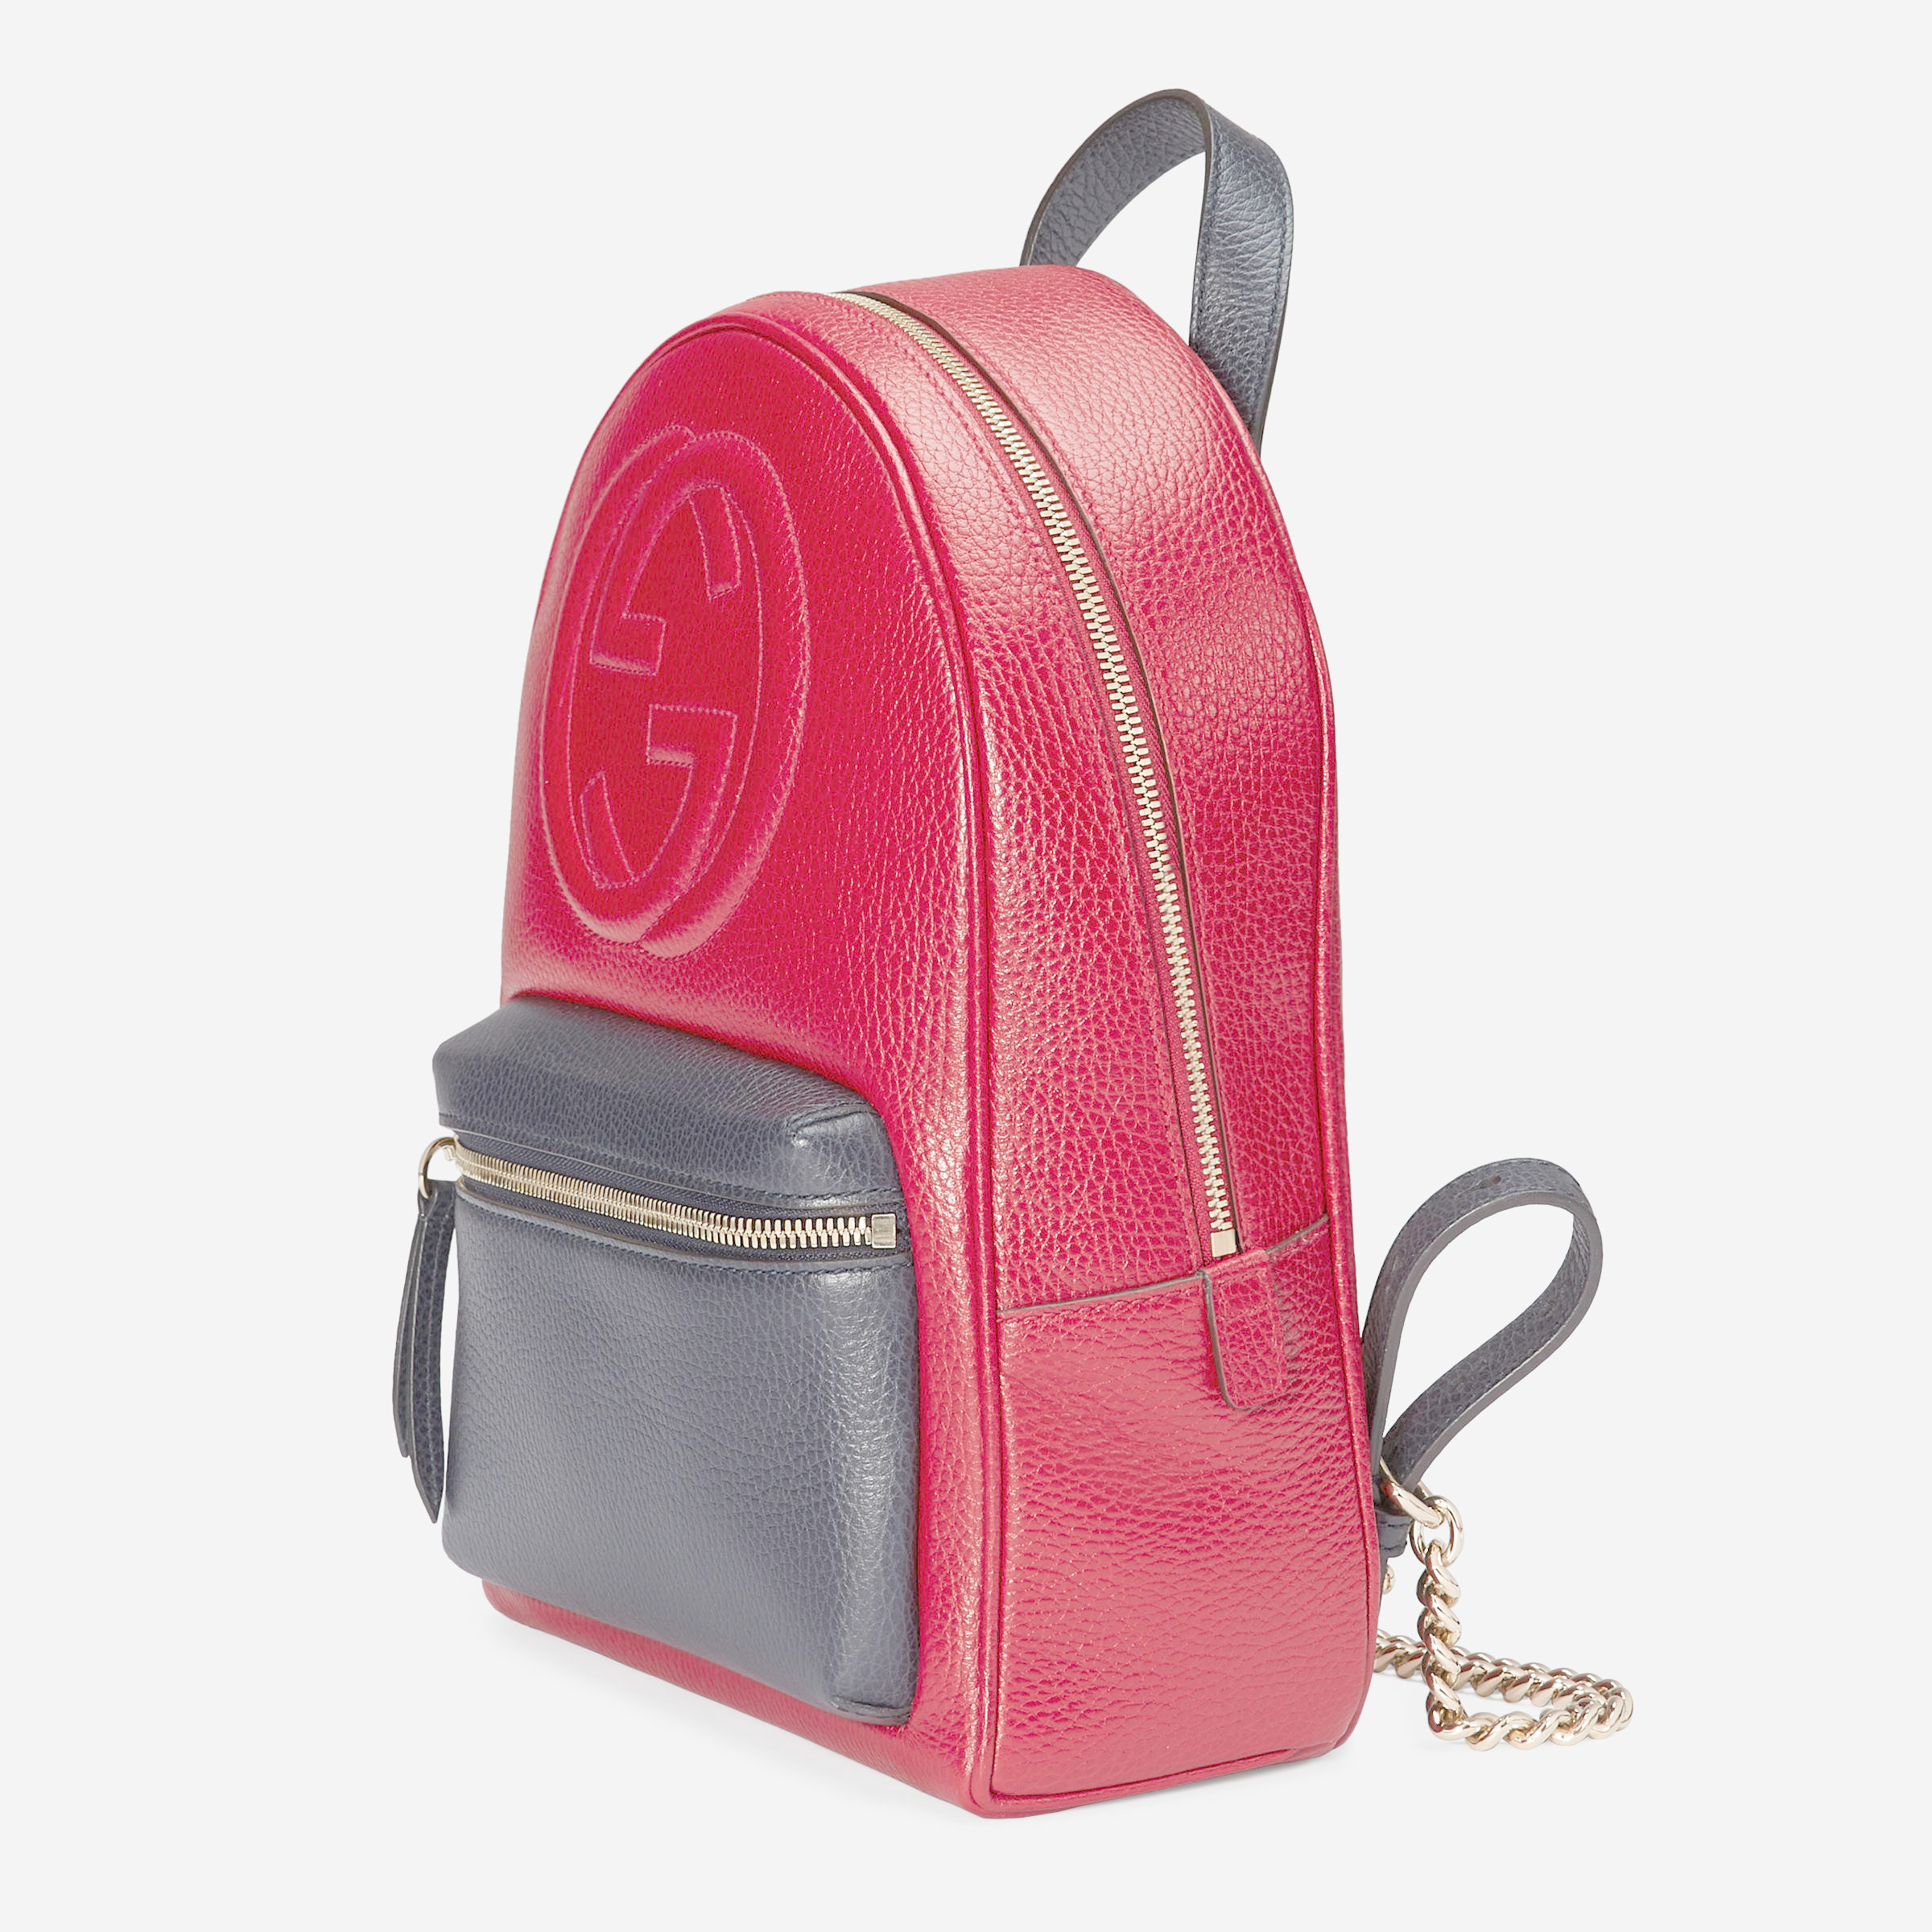 8eec987f213e Lyst - Gucci Soho Leather Chain Backpack in Red